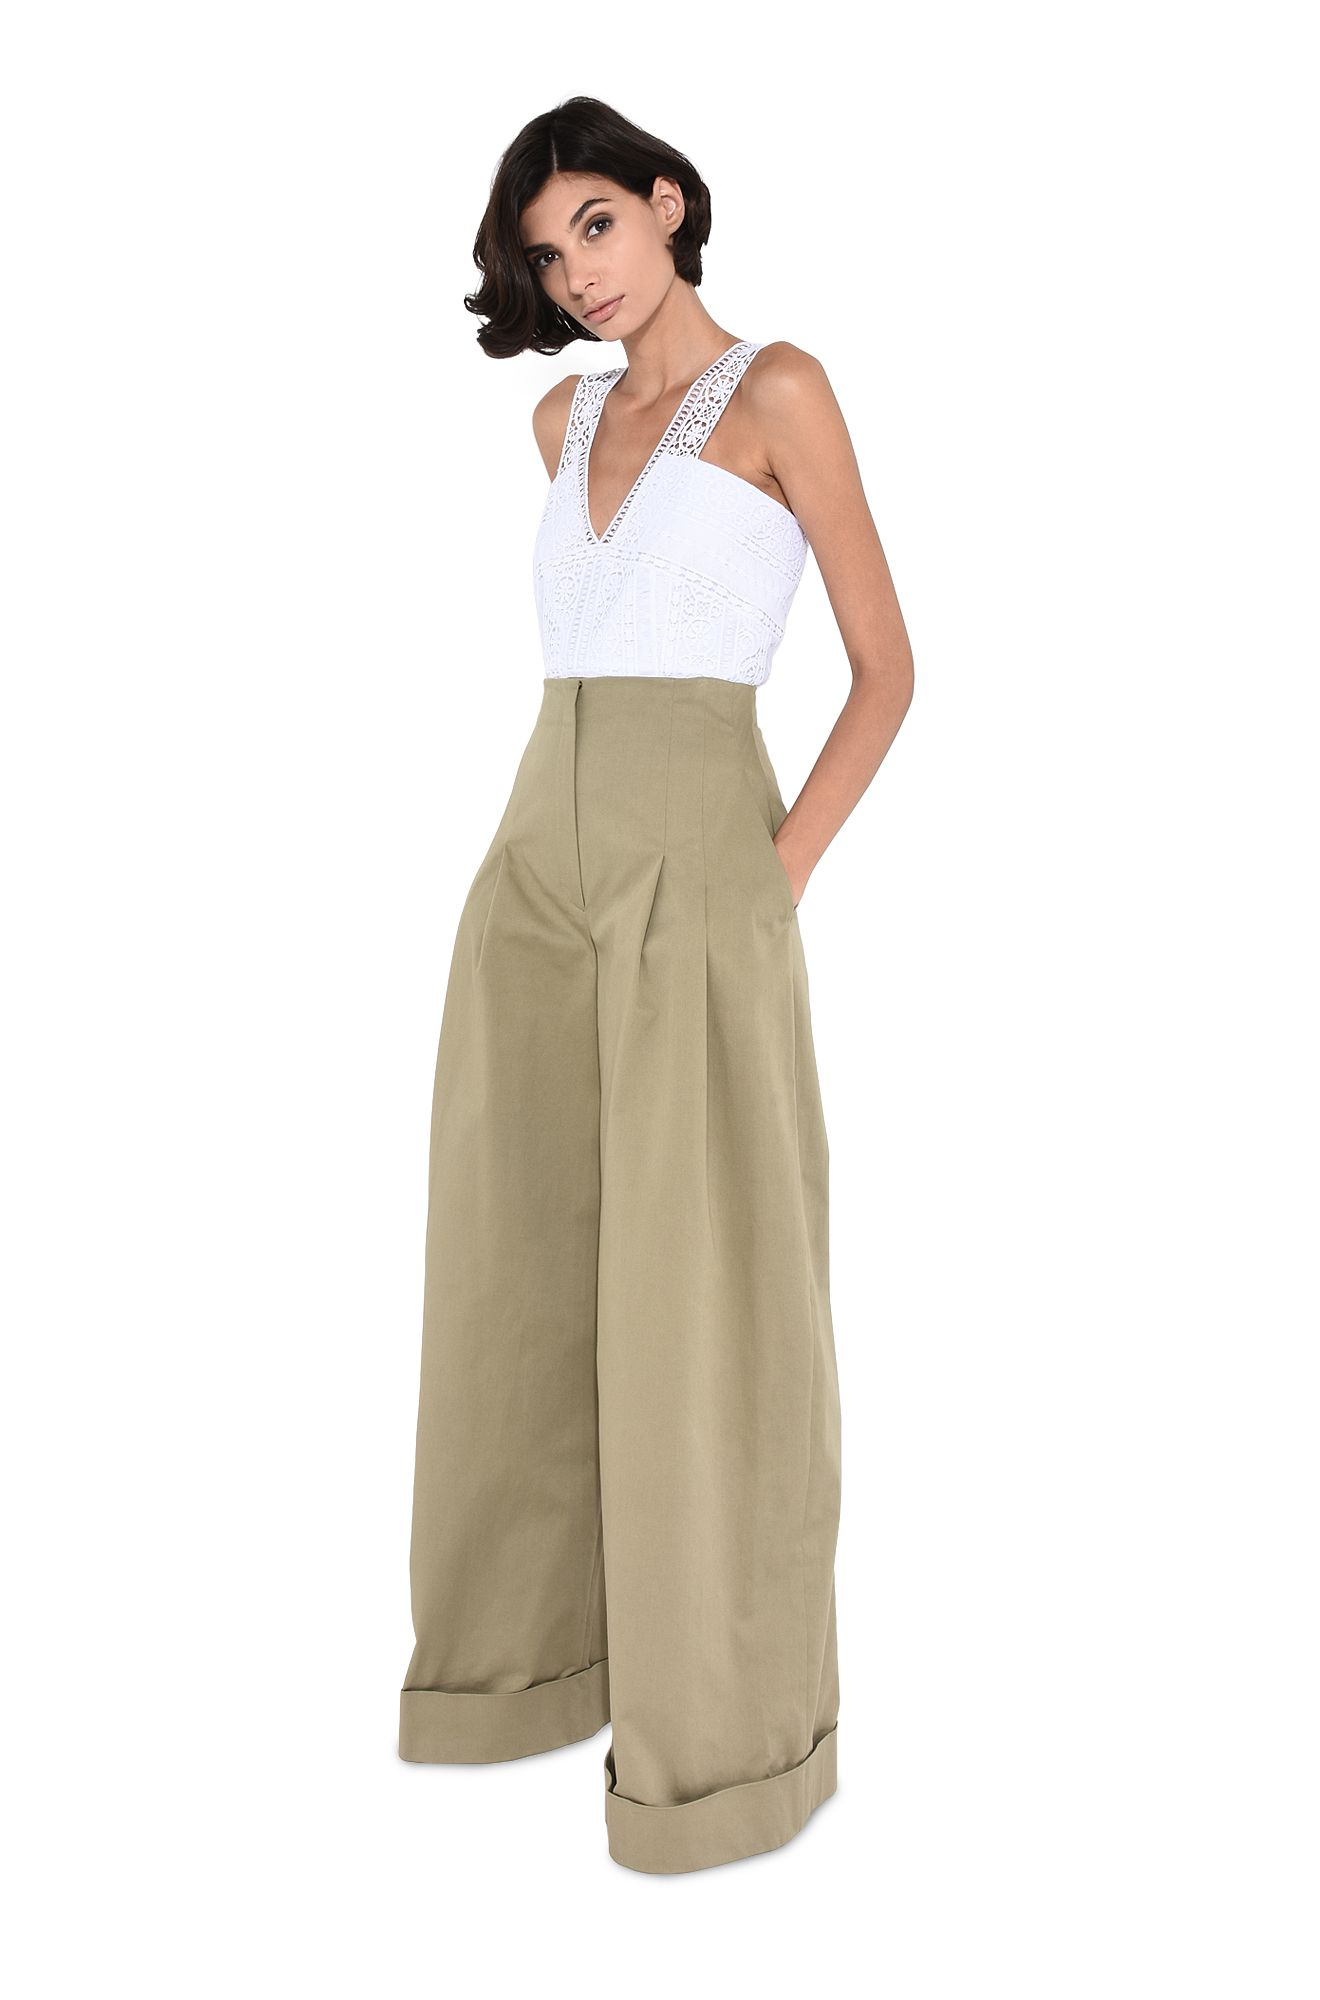 Safari culottes